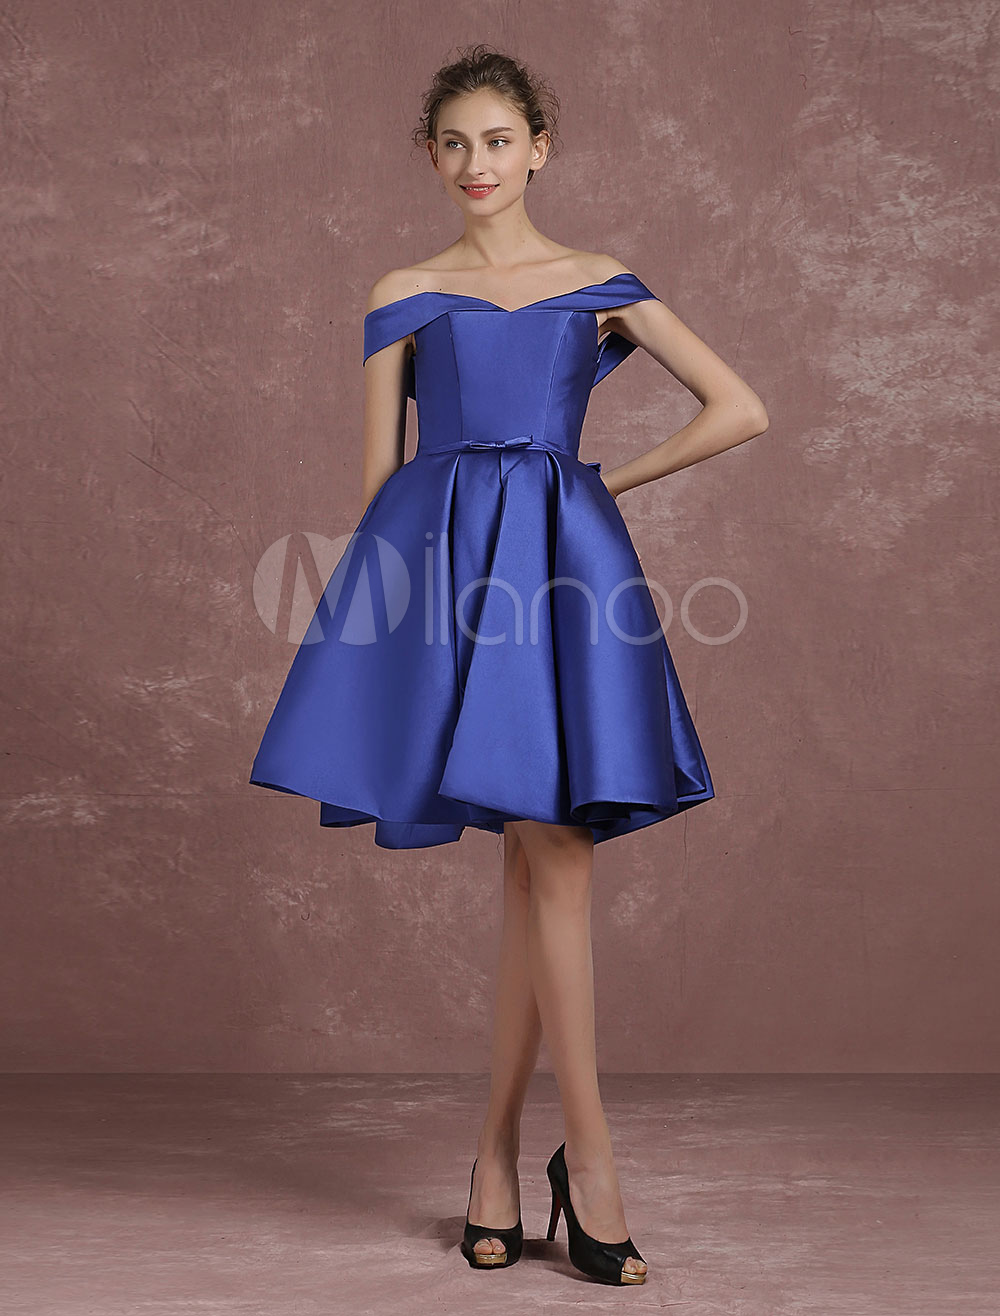 ad8a747867 ... Royal Blue Cocktail Dress Off The Shoulder Satin Prom Dress V Neck  Pleated A Line Knee ...